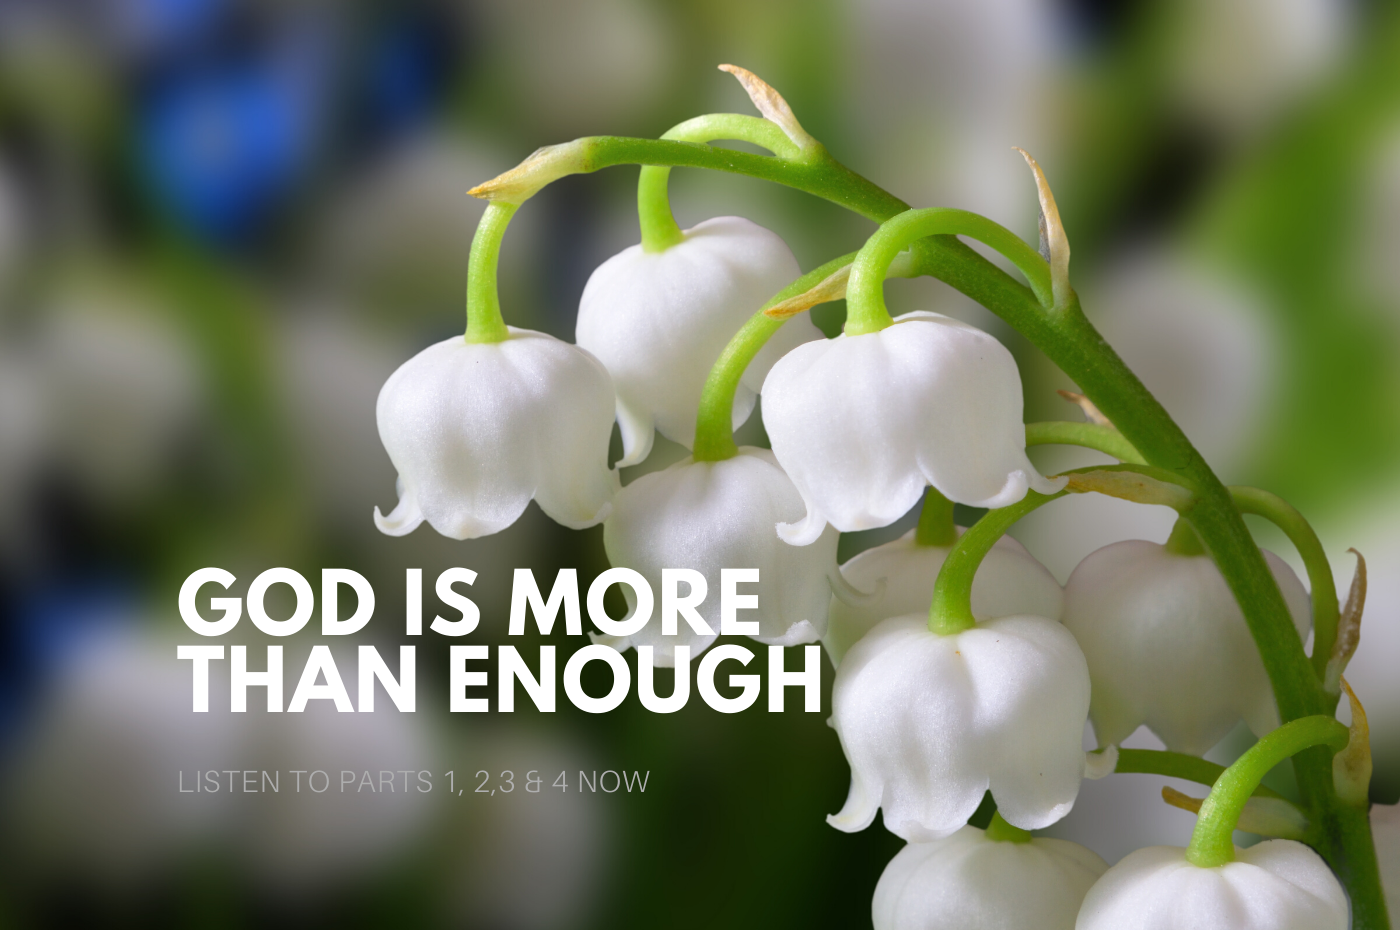 A Moment of Inspiration: God Is More Than Enough